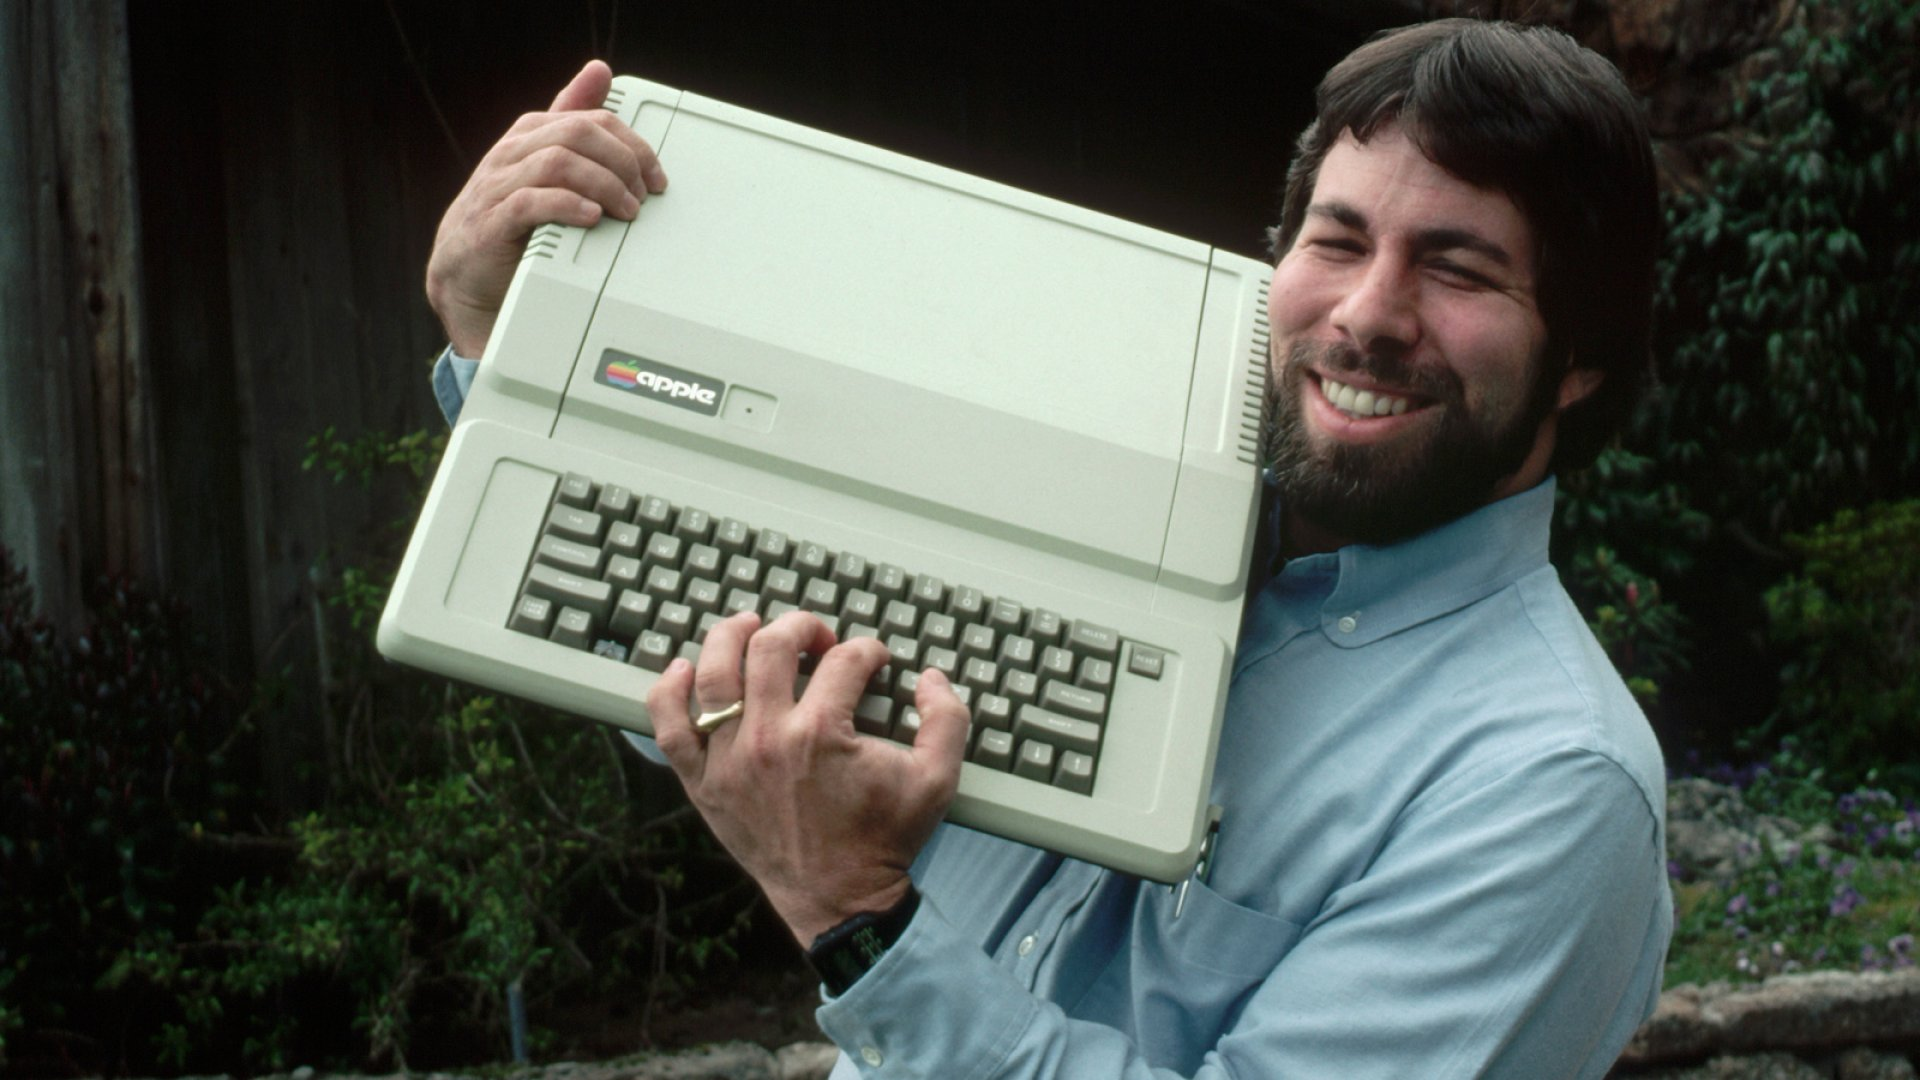 2 Lessons From Steve Wozniak's Early Creative Experiments